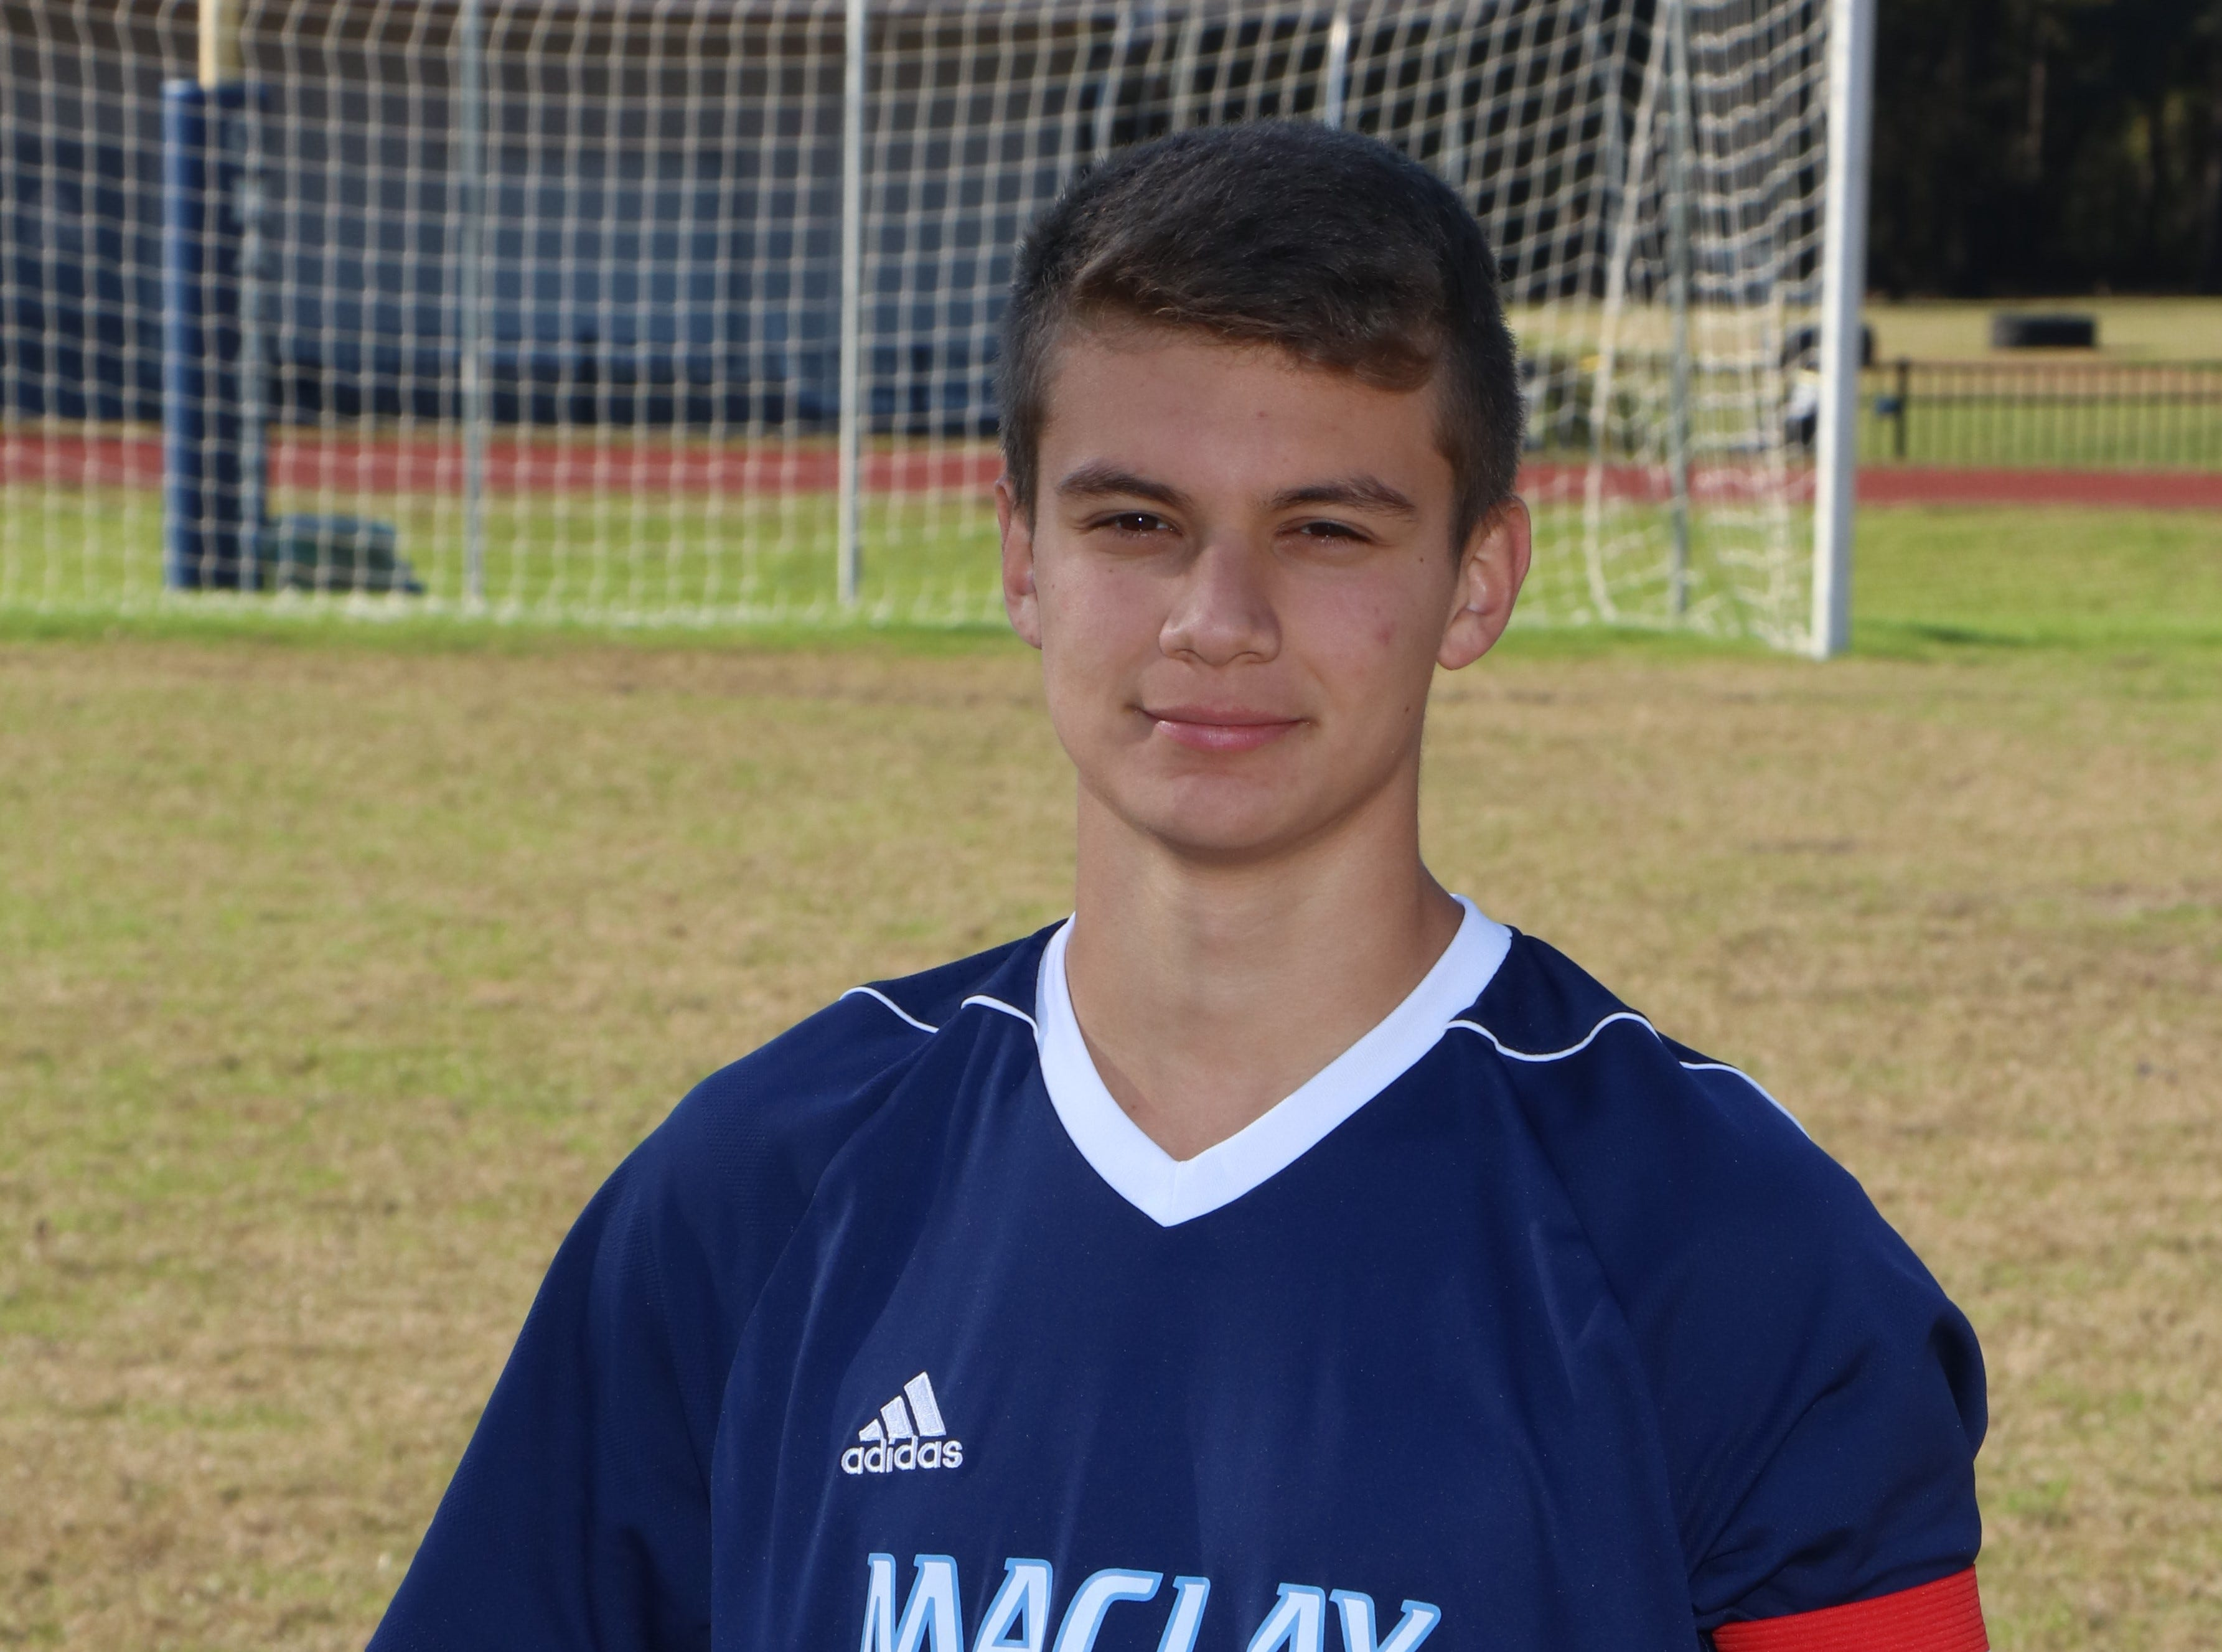 Maclay junior defender Alex Guzman was selected to the 2019 All-Big Bend boys soccer first team.